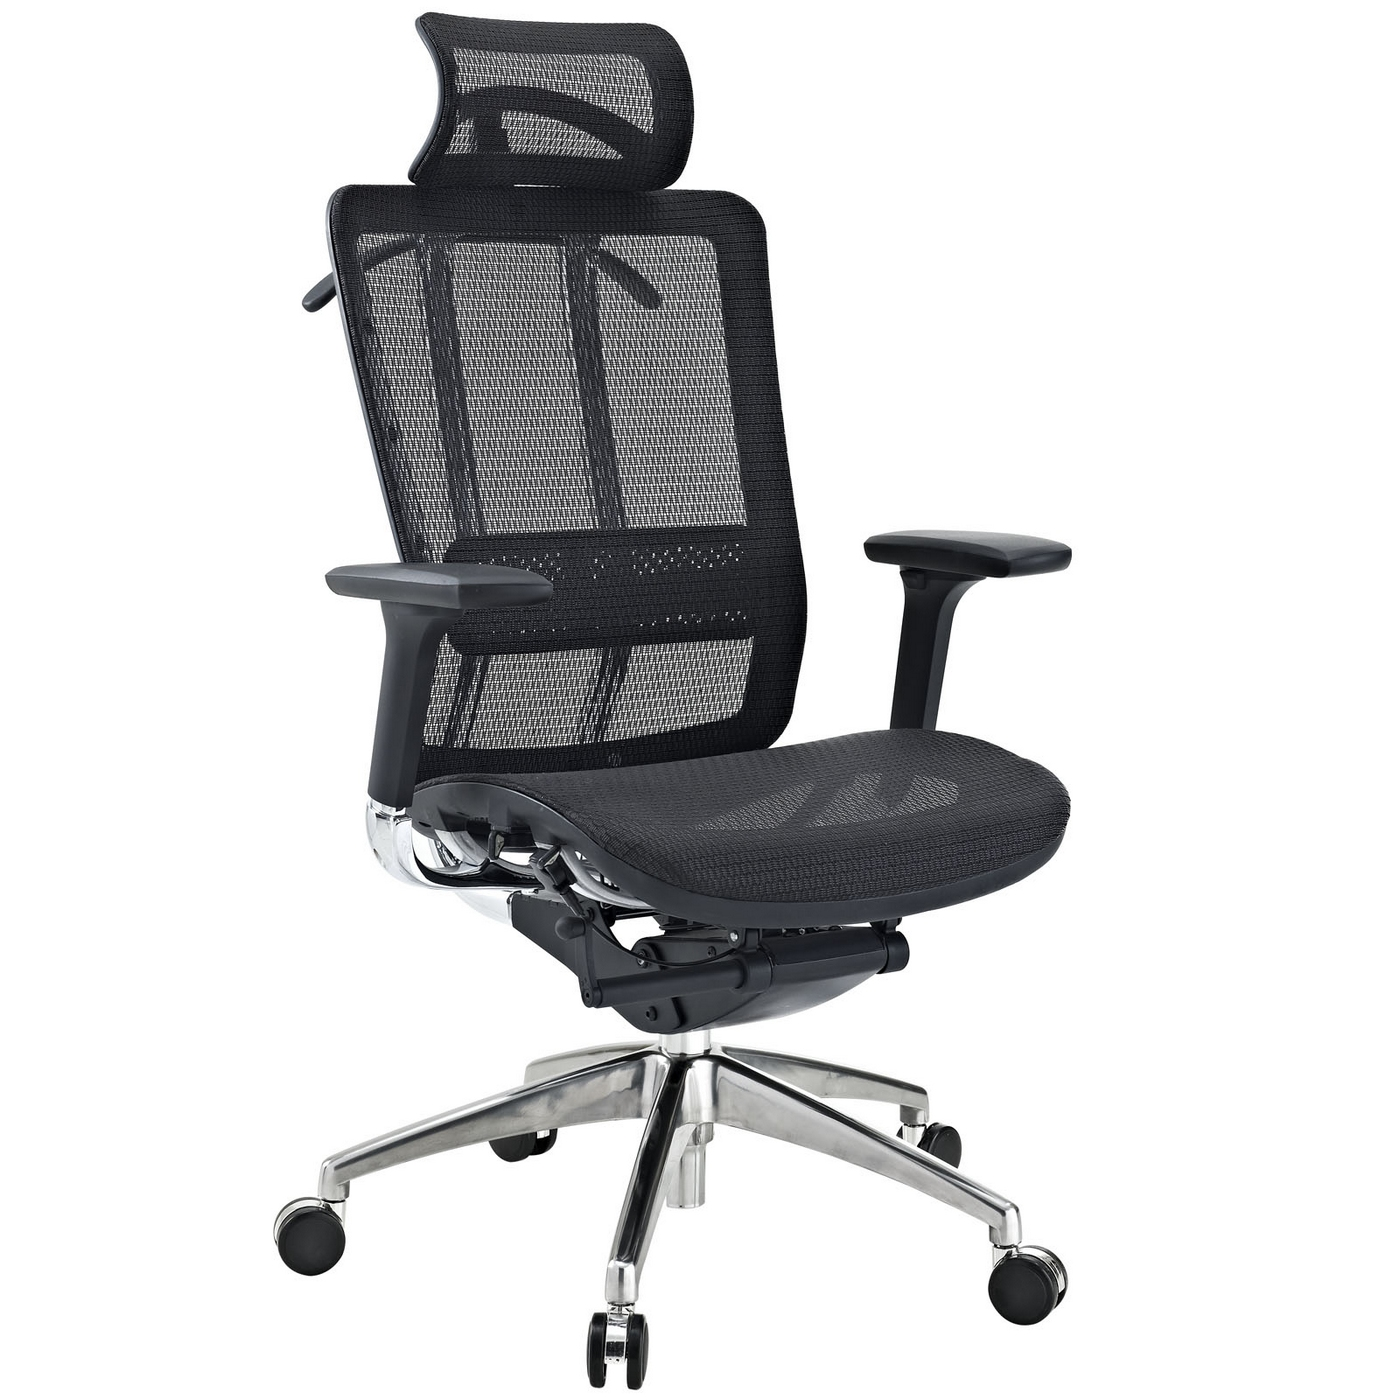 Ergonomic Office Chairs Future Modernistic Fully Featured Ergonomic Office Chair W